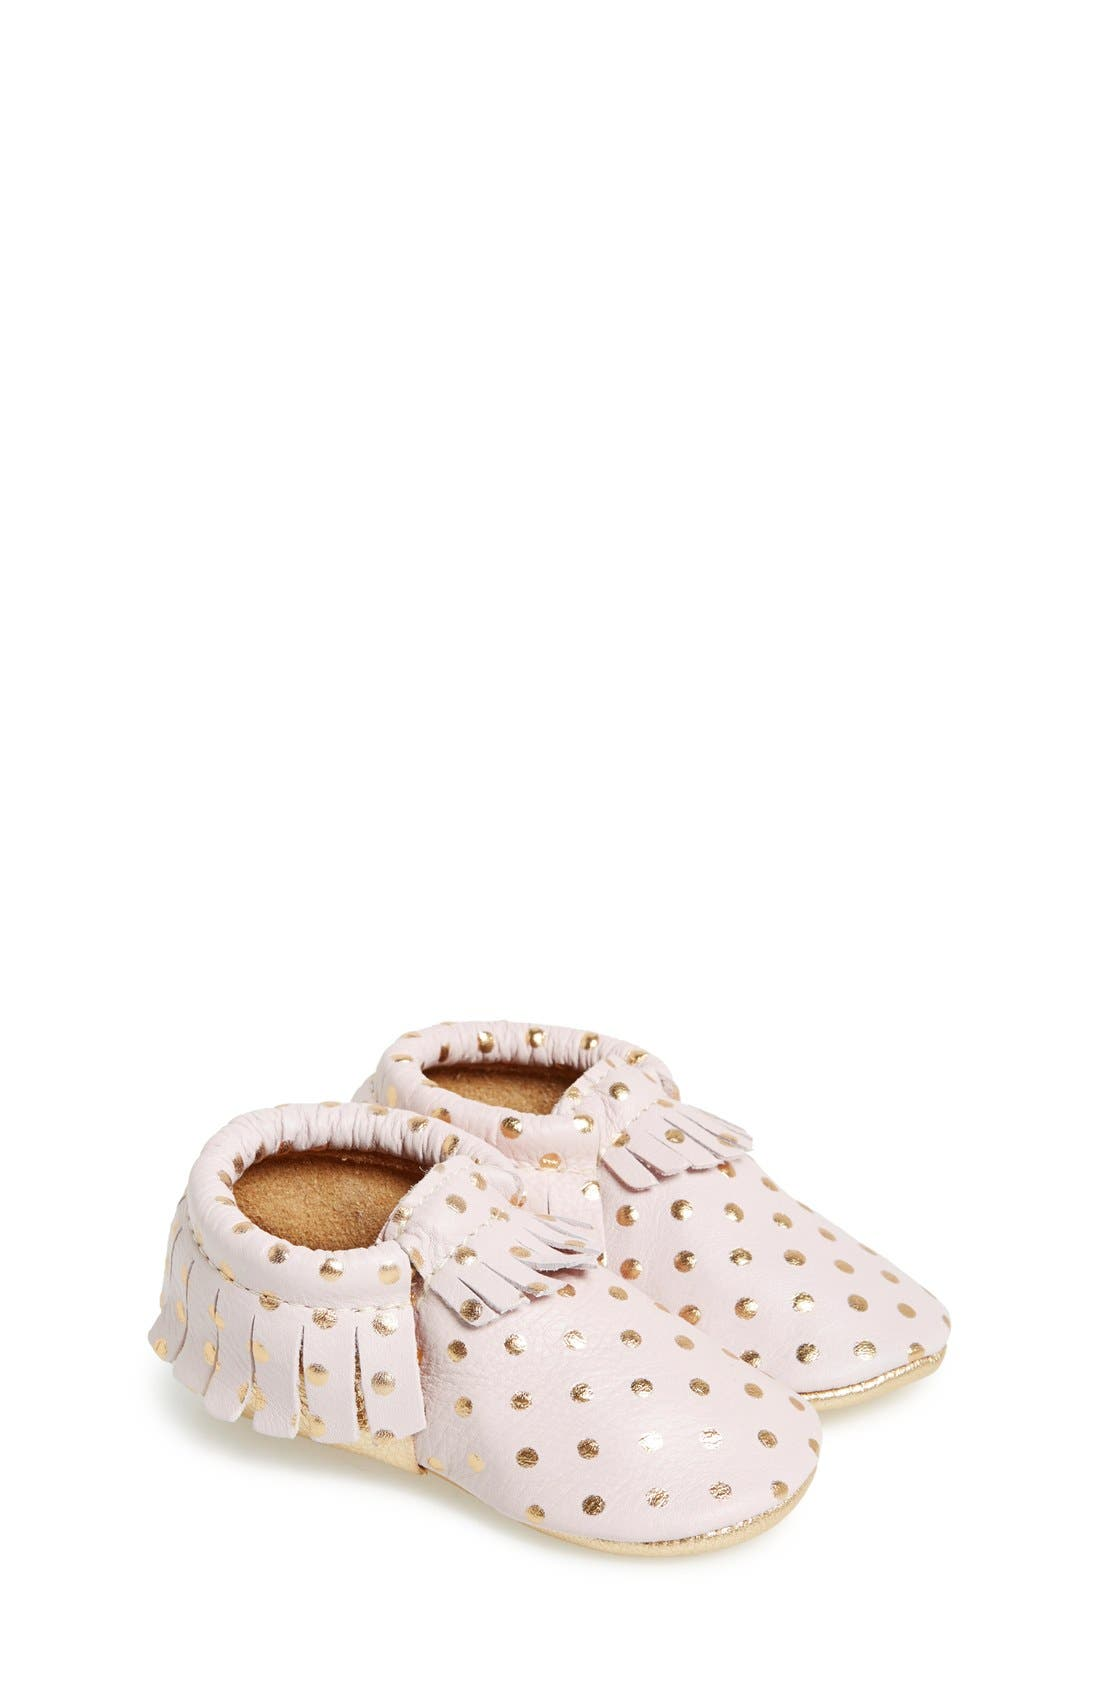 Leather Moccasin,                         Main,                         color, Heirloom Blush And Gold